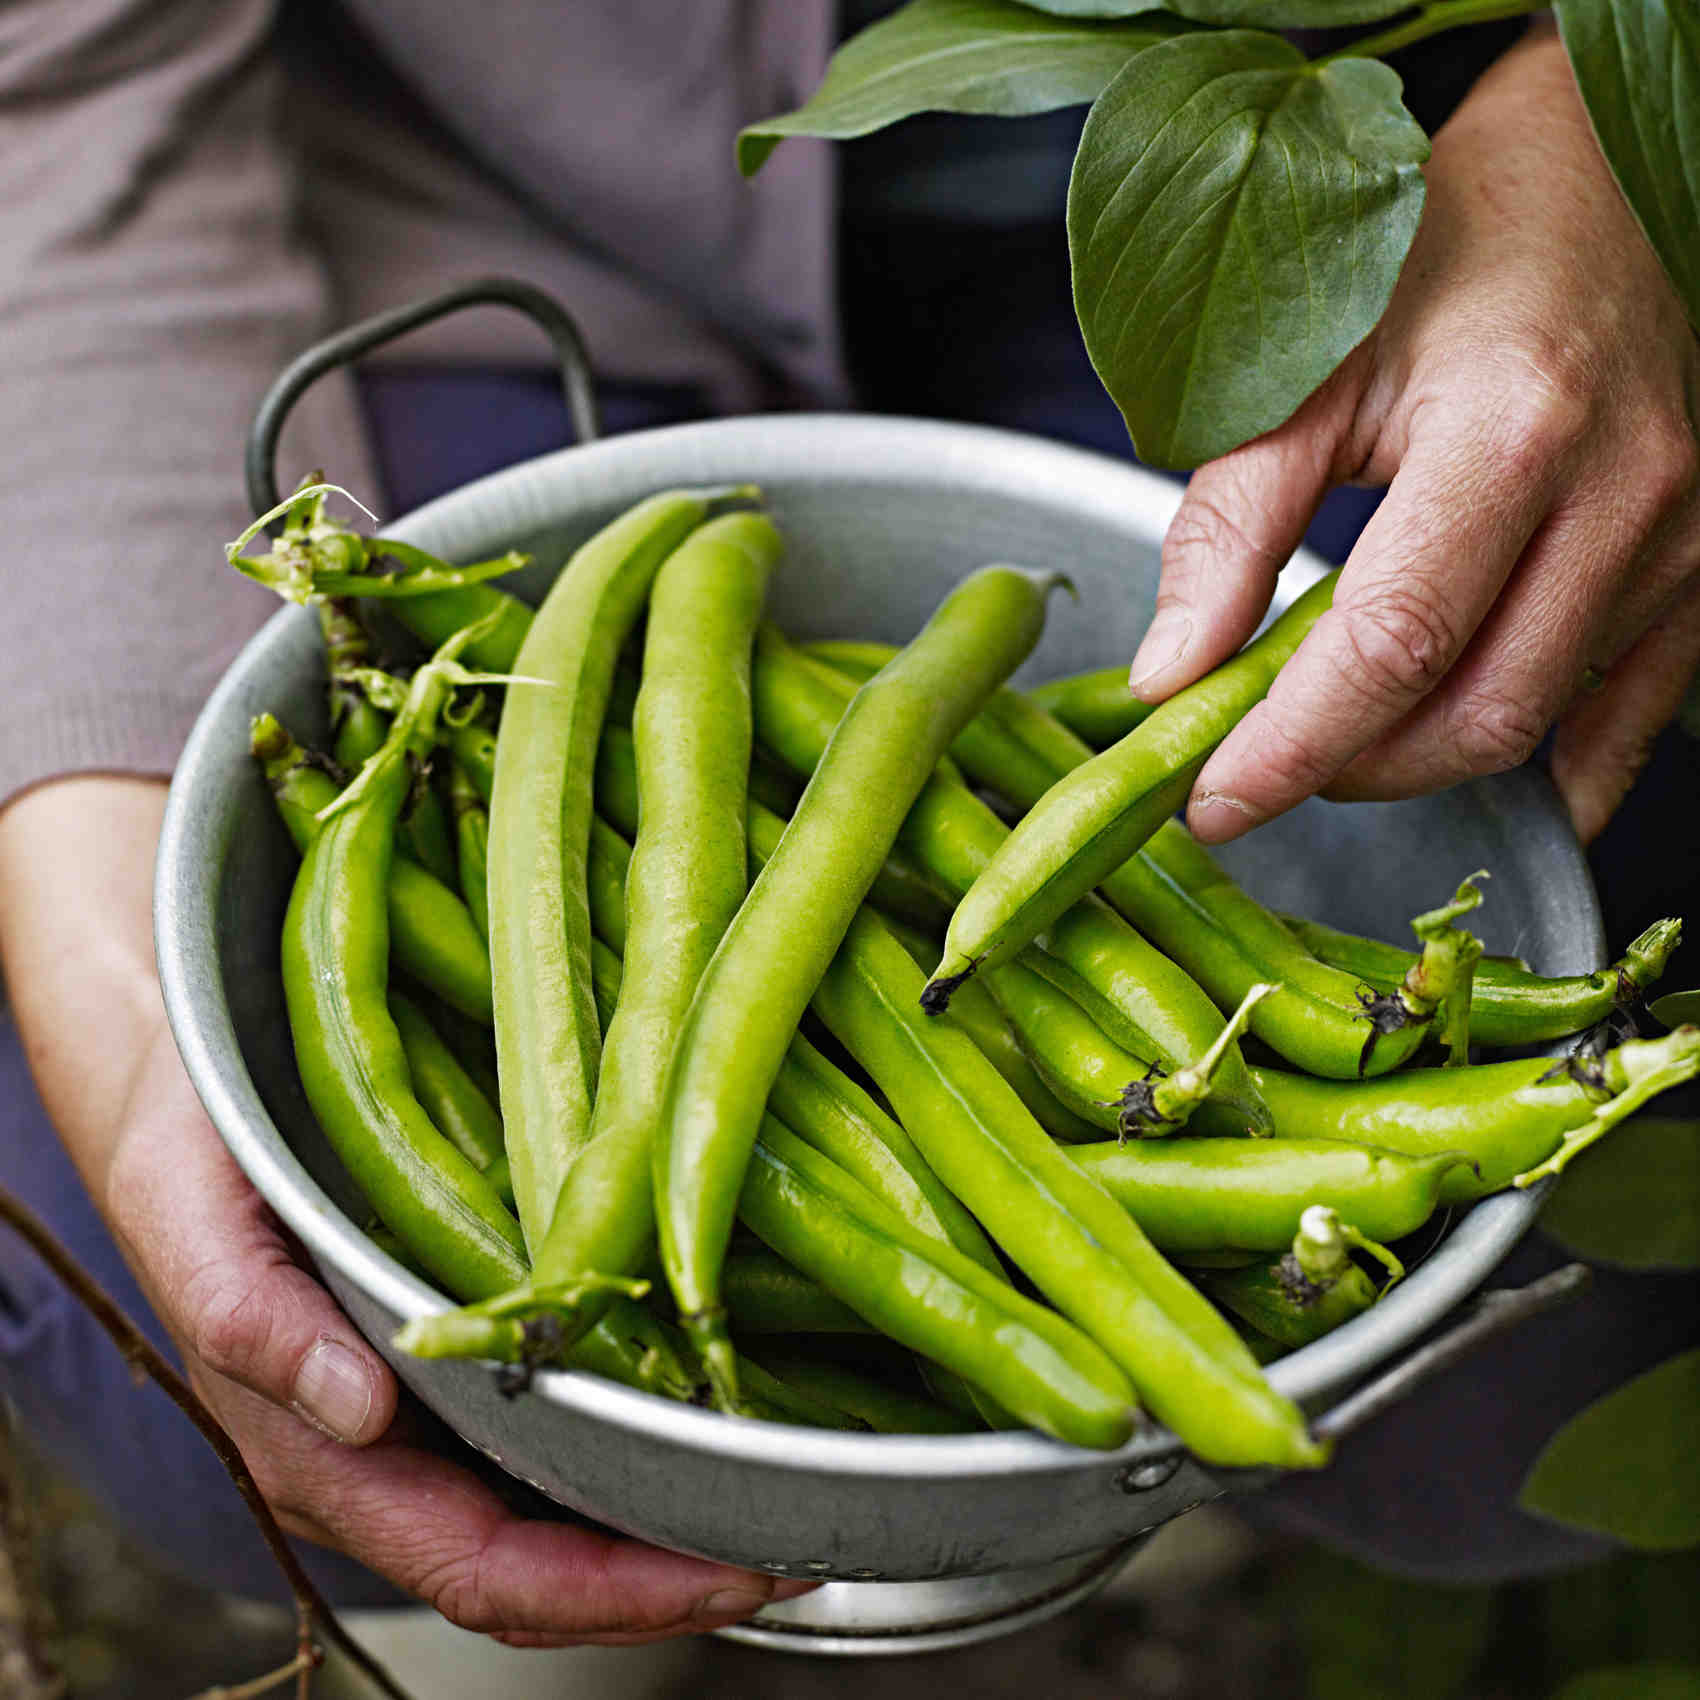 Plant A Vegetable Garden Here S Our Guide From Soil To Seeds To